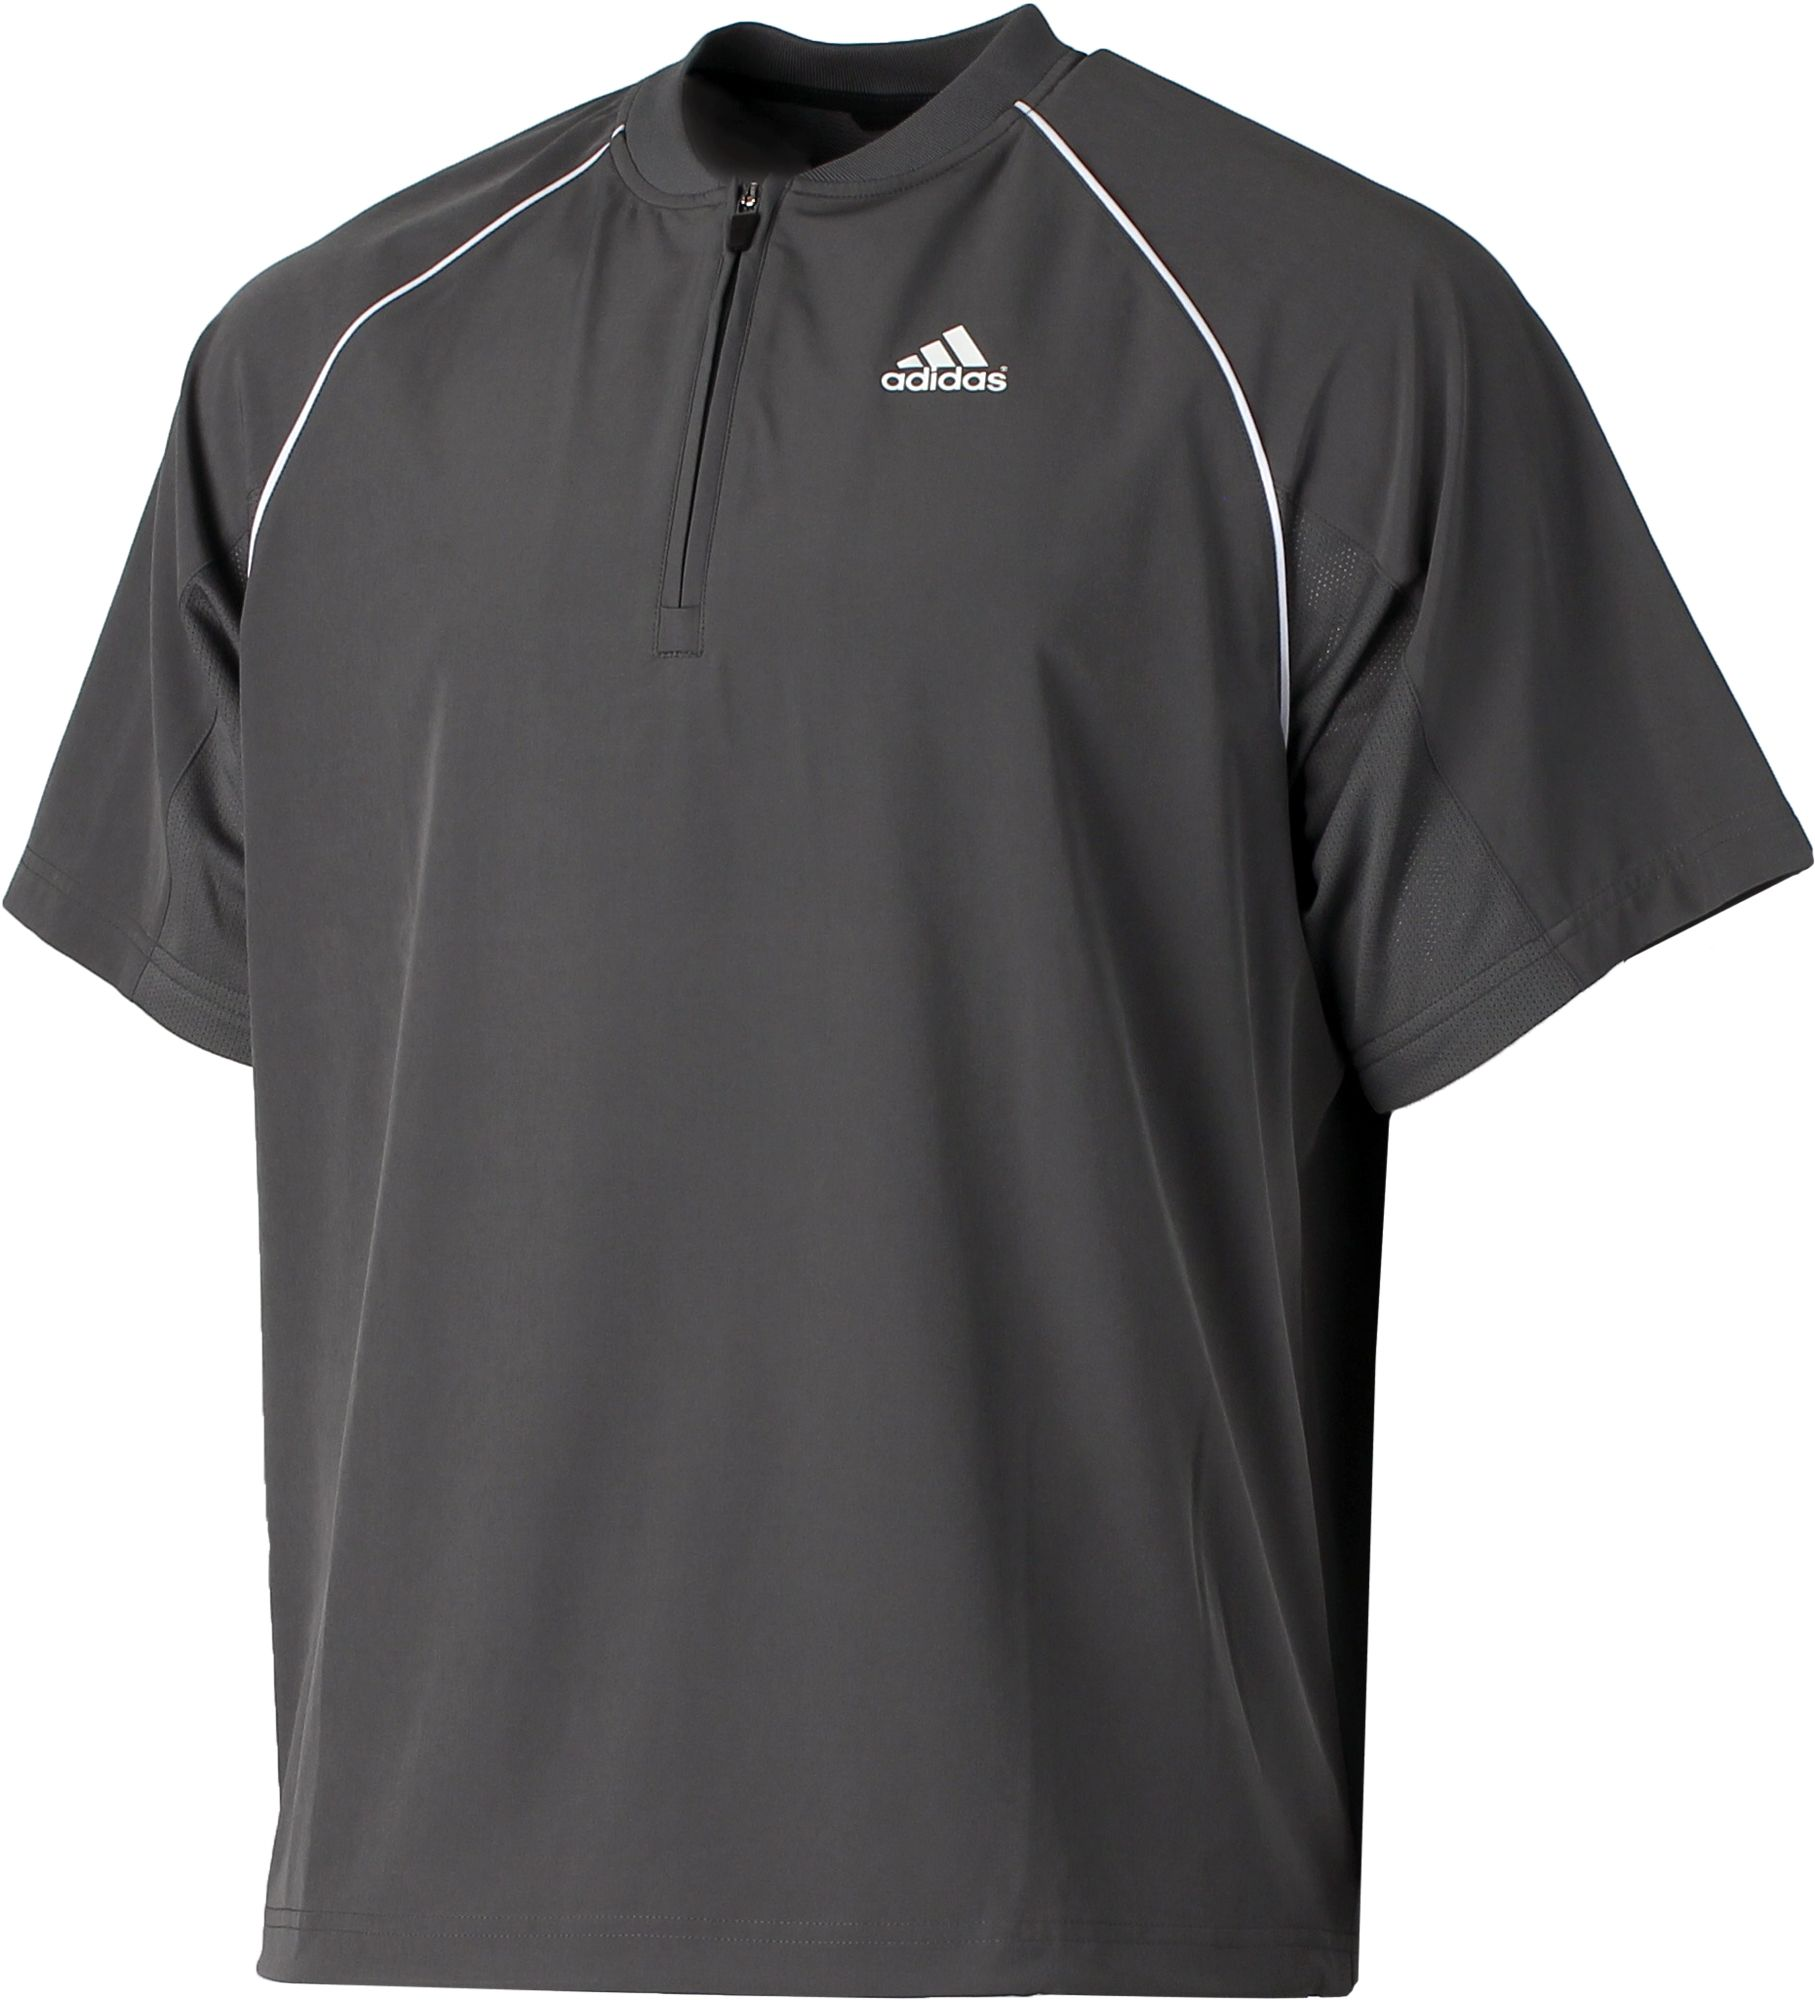 Baseball Shirts & Jackets | DICK'S Sporting Goods